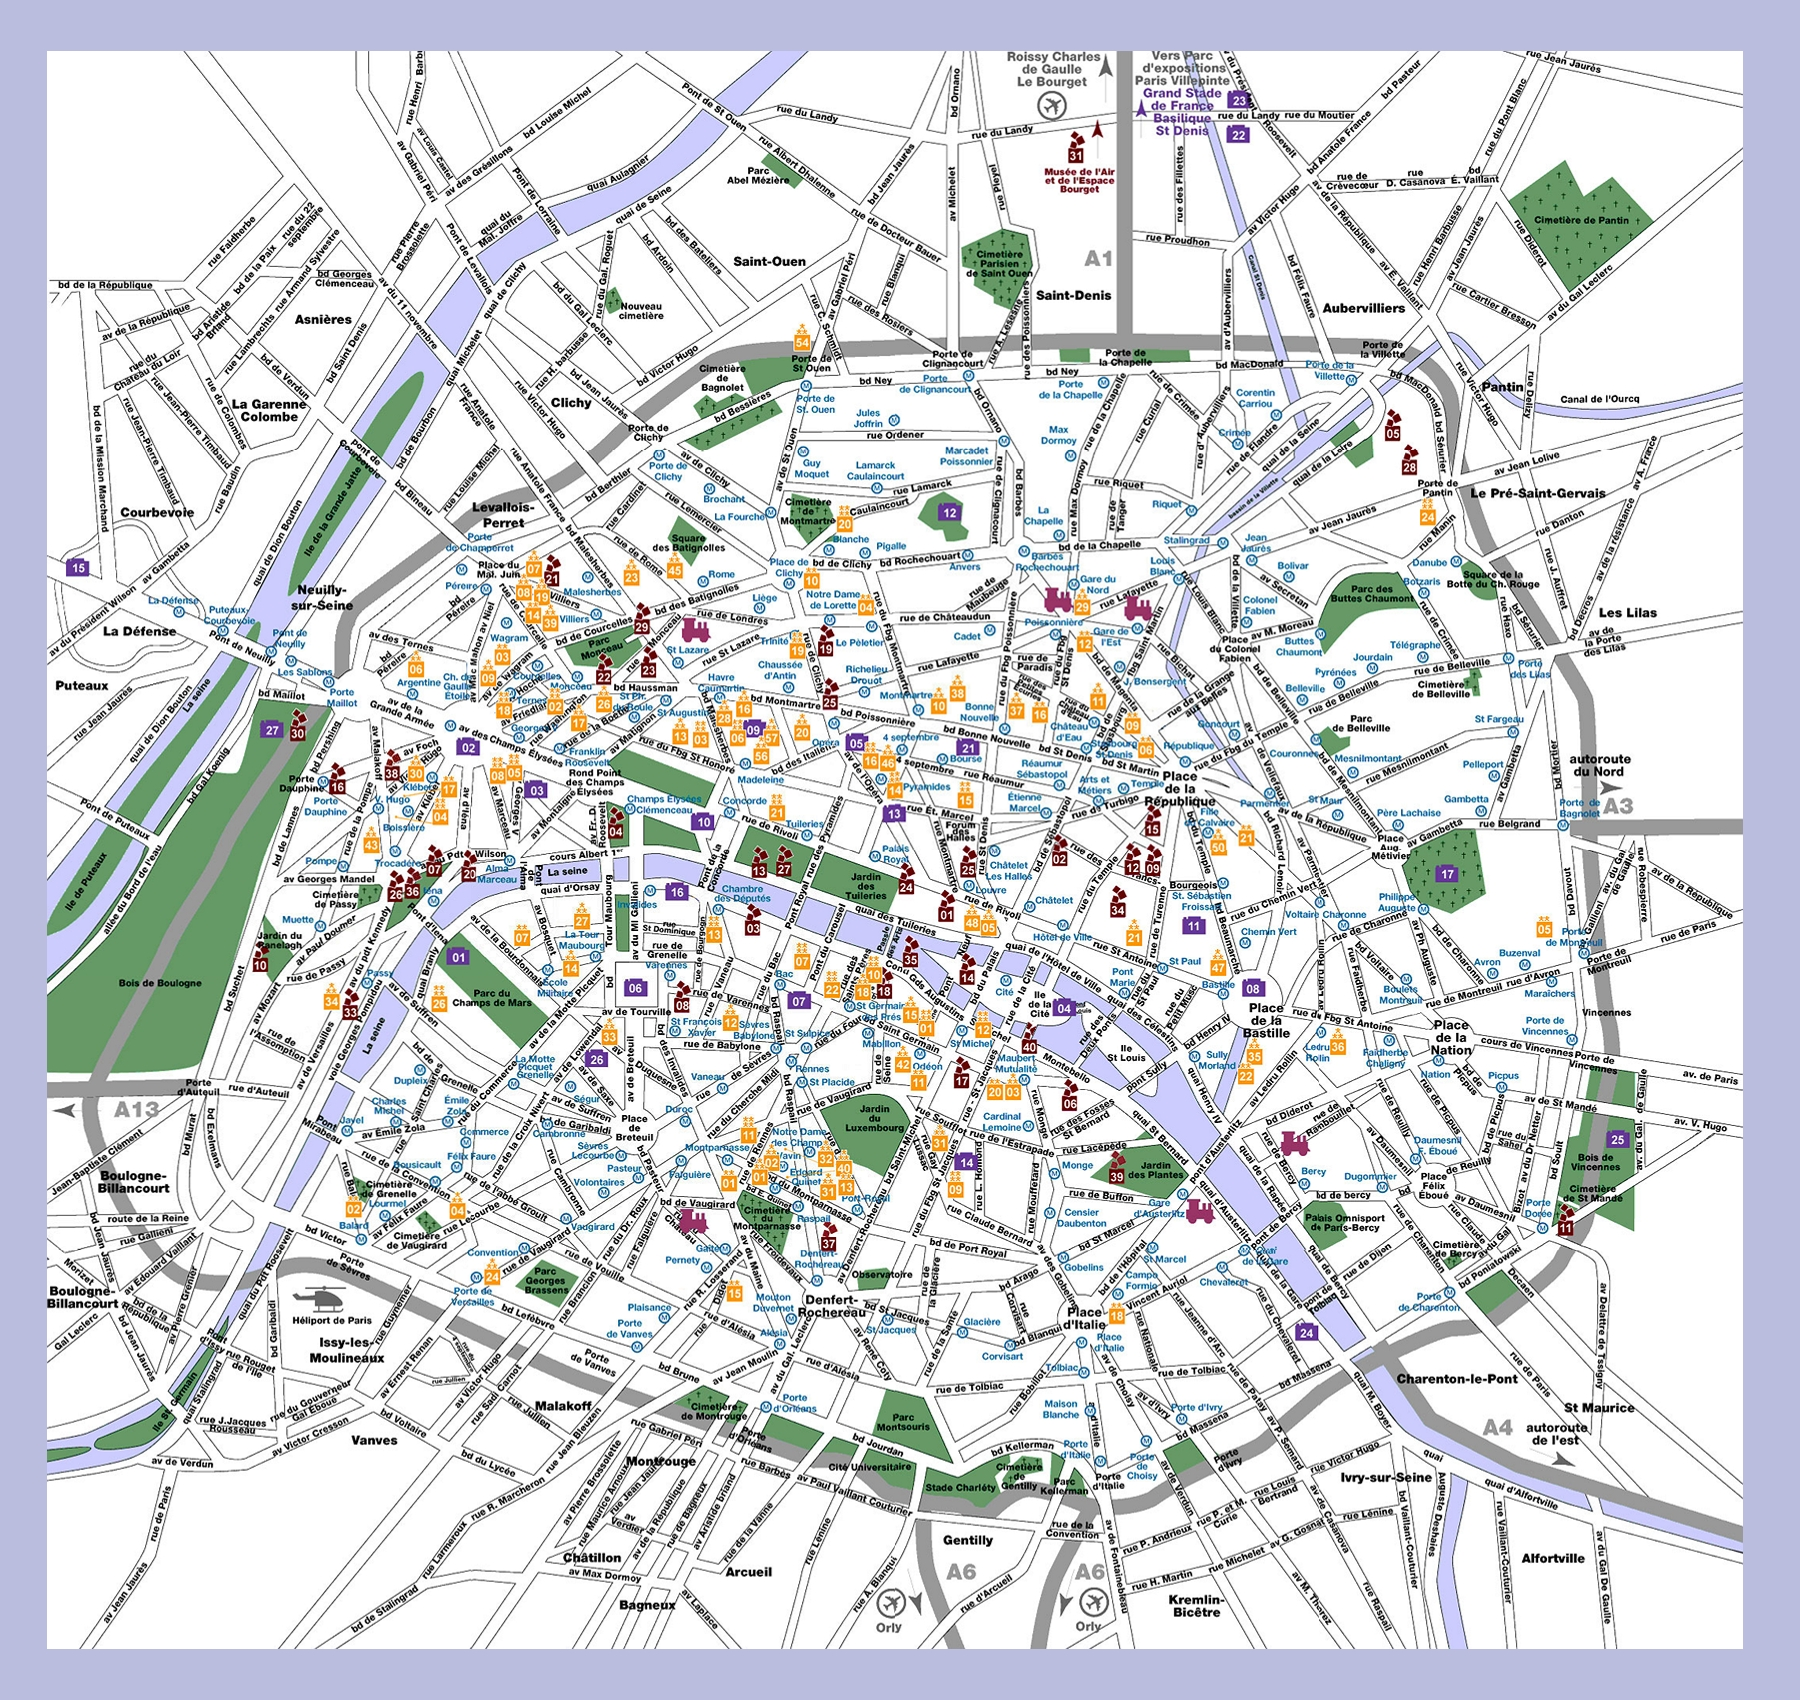 Map Of Paris In English Paris France Tourist Attractions Map – Paris Tourist Attractions Map